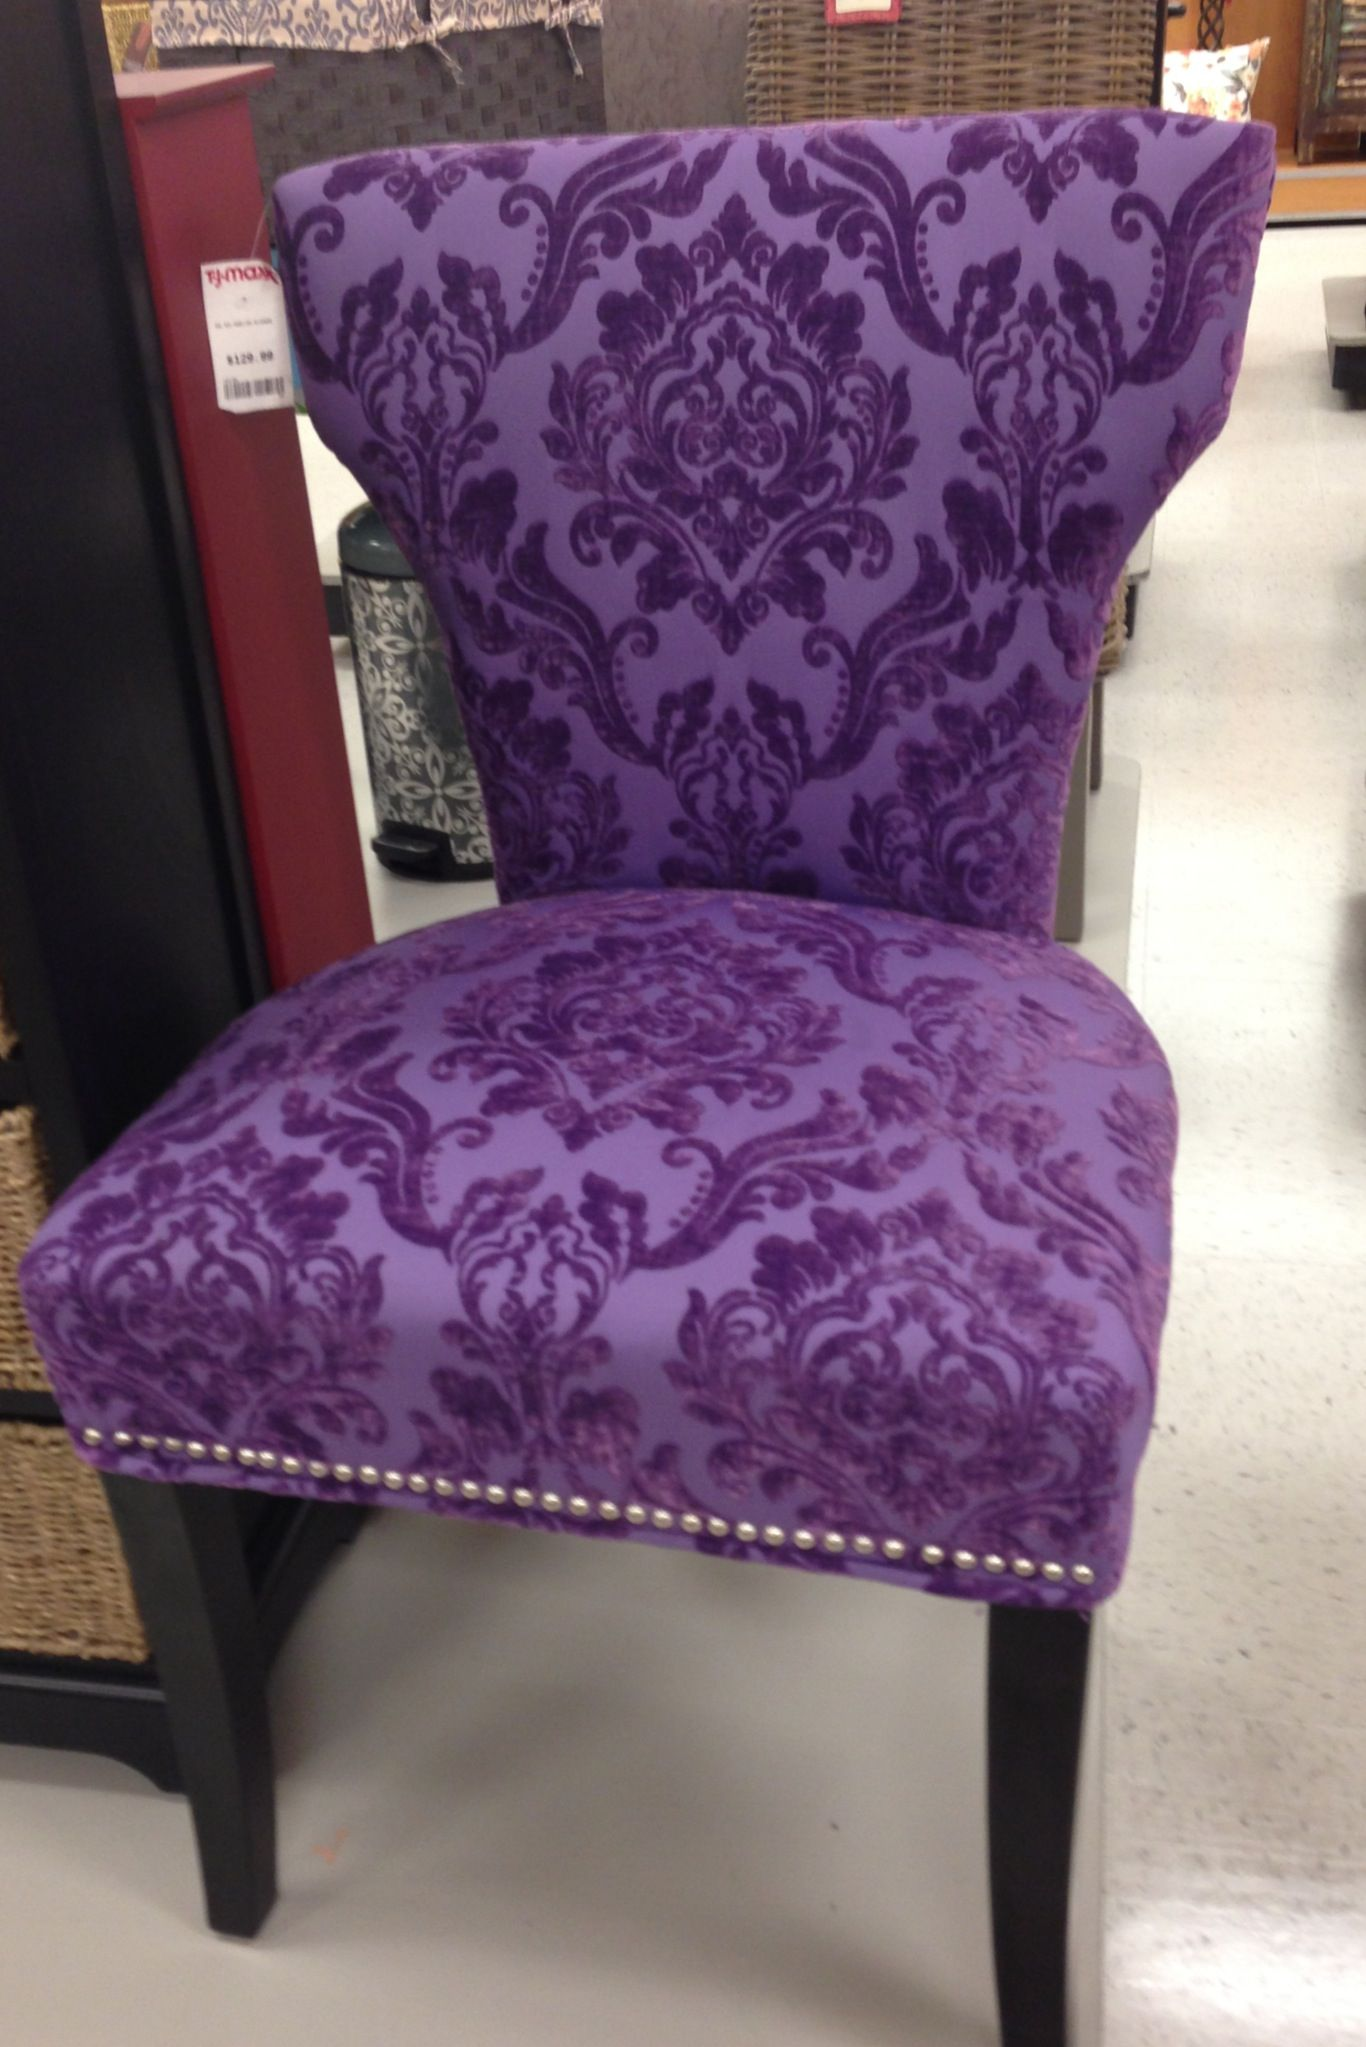 Lavender Chair Love This Purple Chair Purple Is My Passion